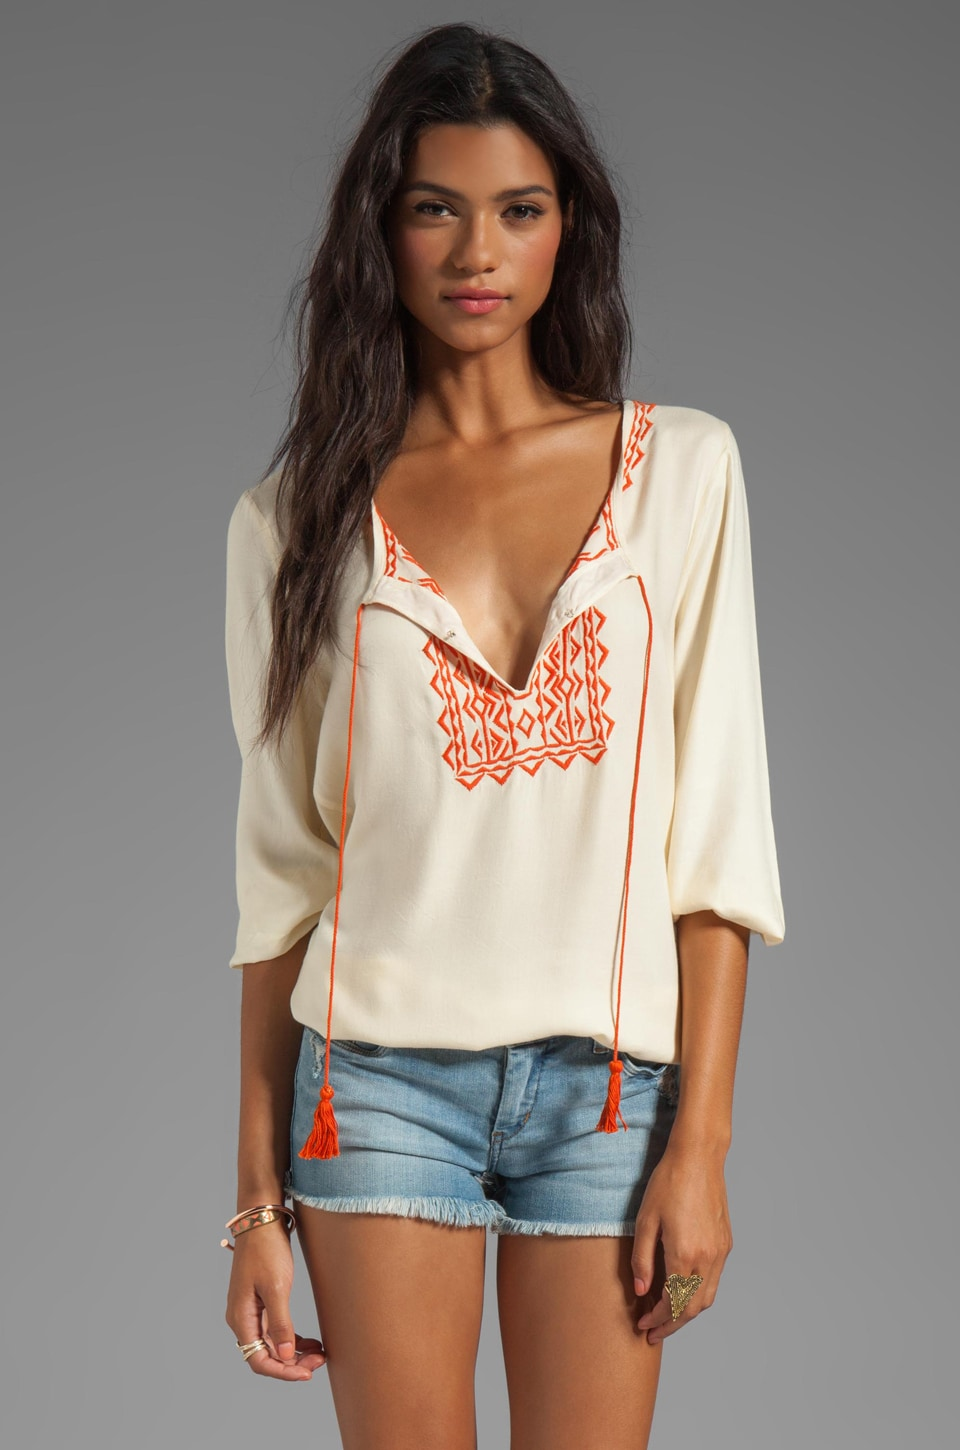 Soft Joie Calathia Embroidered Top in Vanilla/Pureed Pumpkin